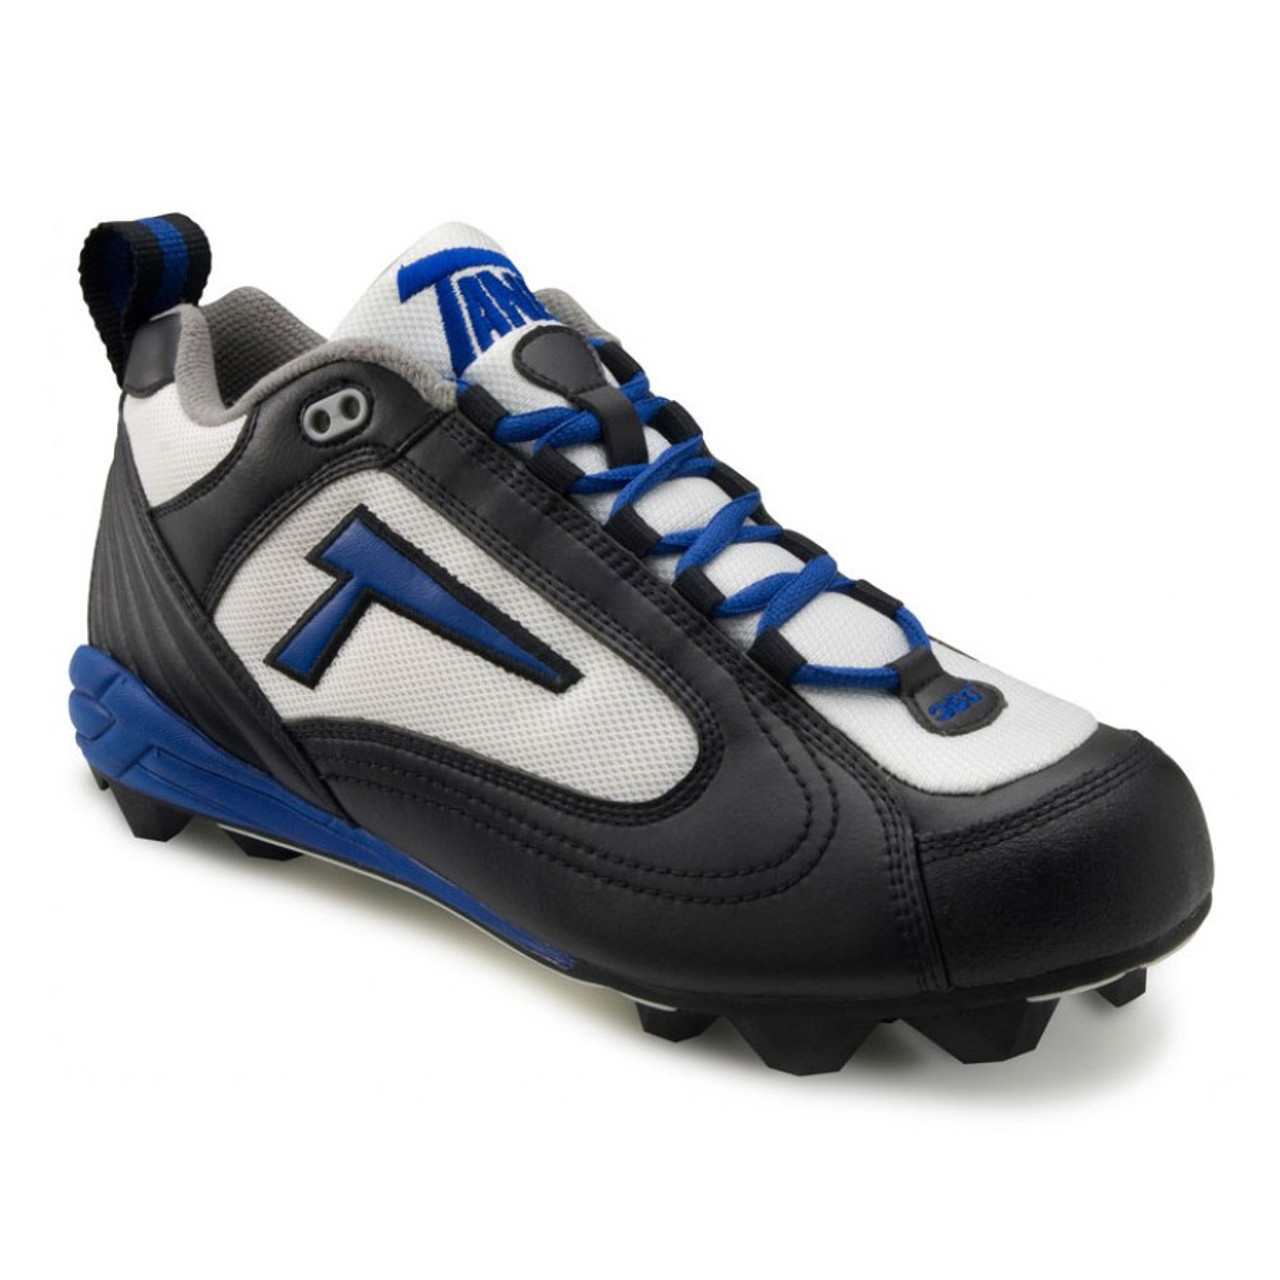 695a1472df0a Tanel 360 RPM 2G Lite Low Youth Baseball/Softball Cleats - Tanel 360